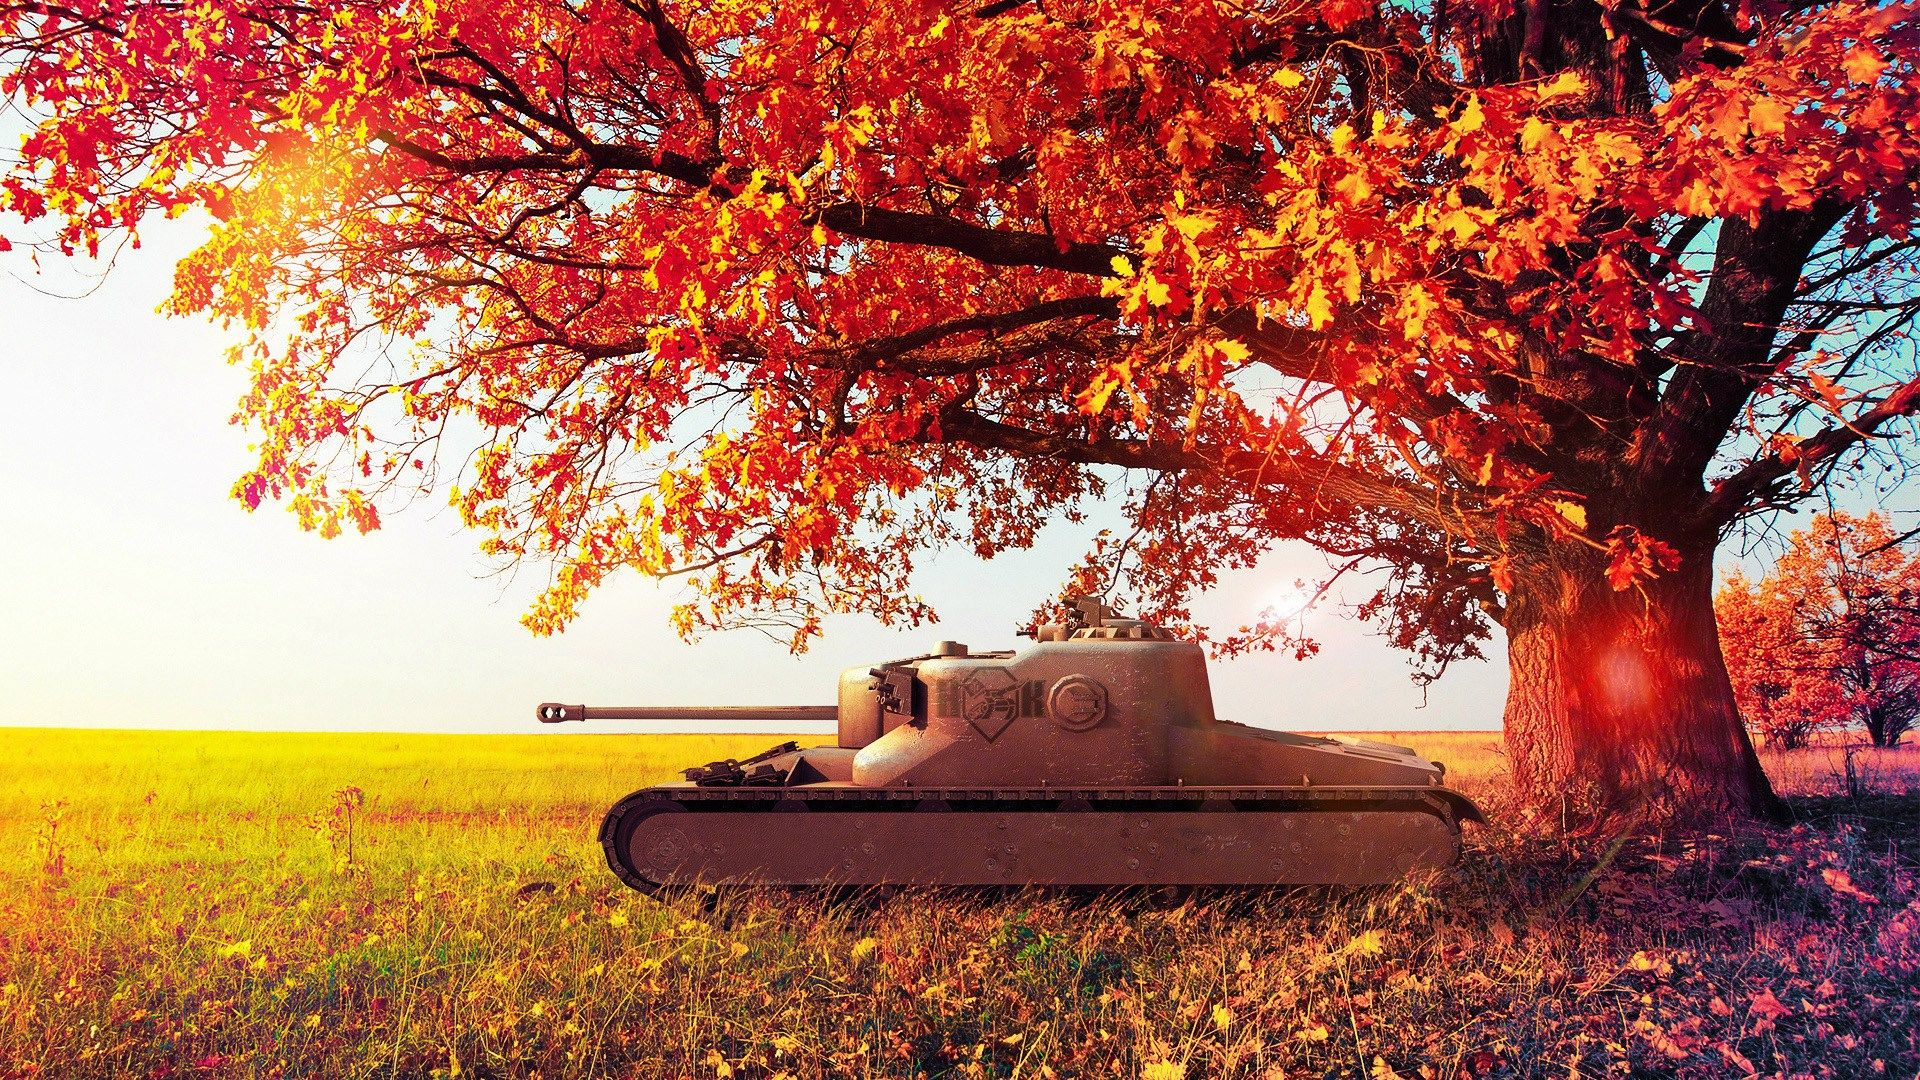 Pictures for Desktop: World of Tanks wallpaper - World of Tanks category